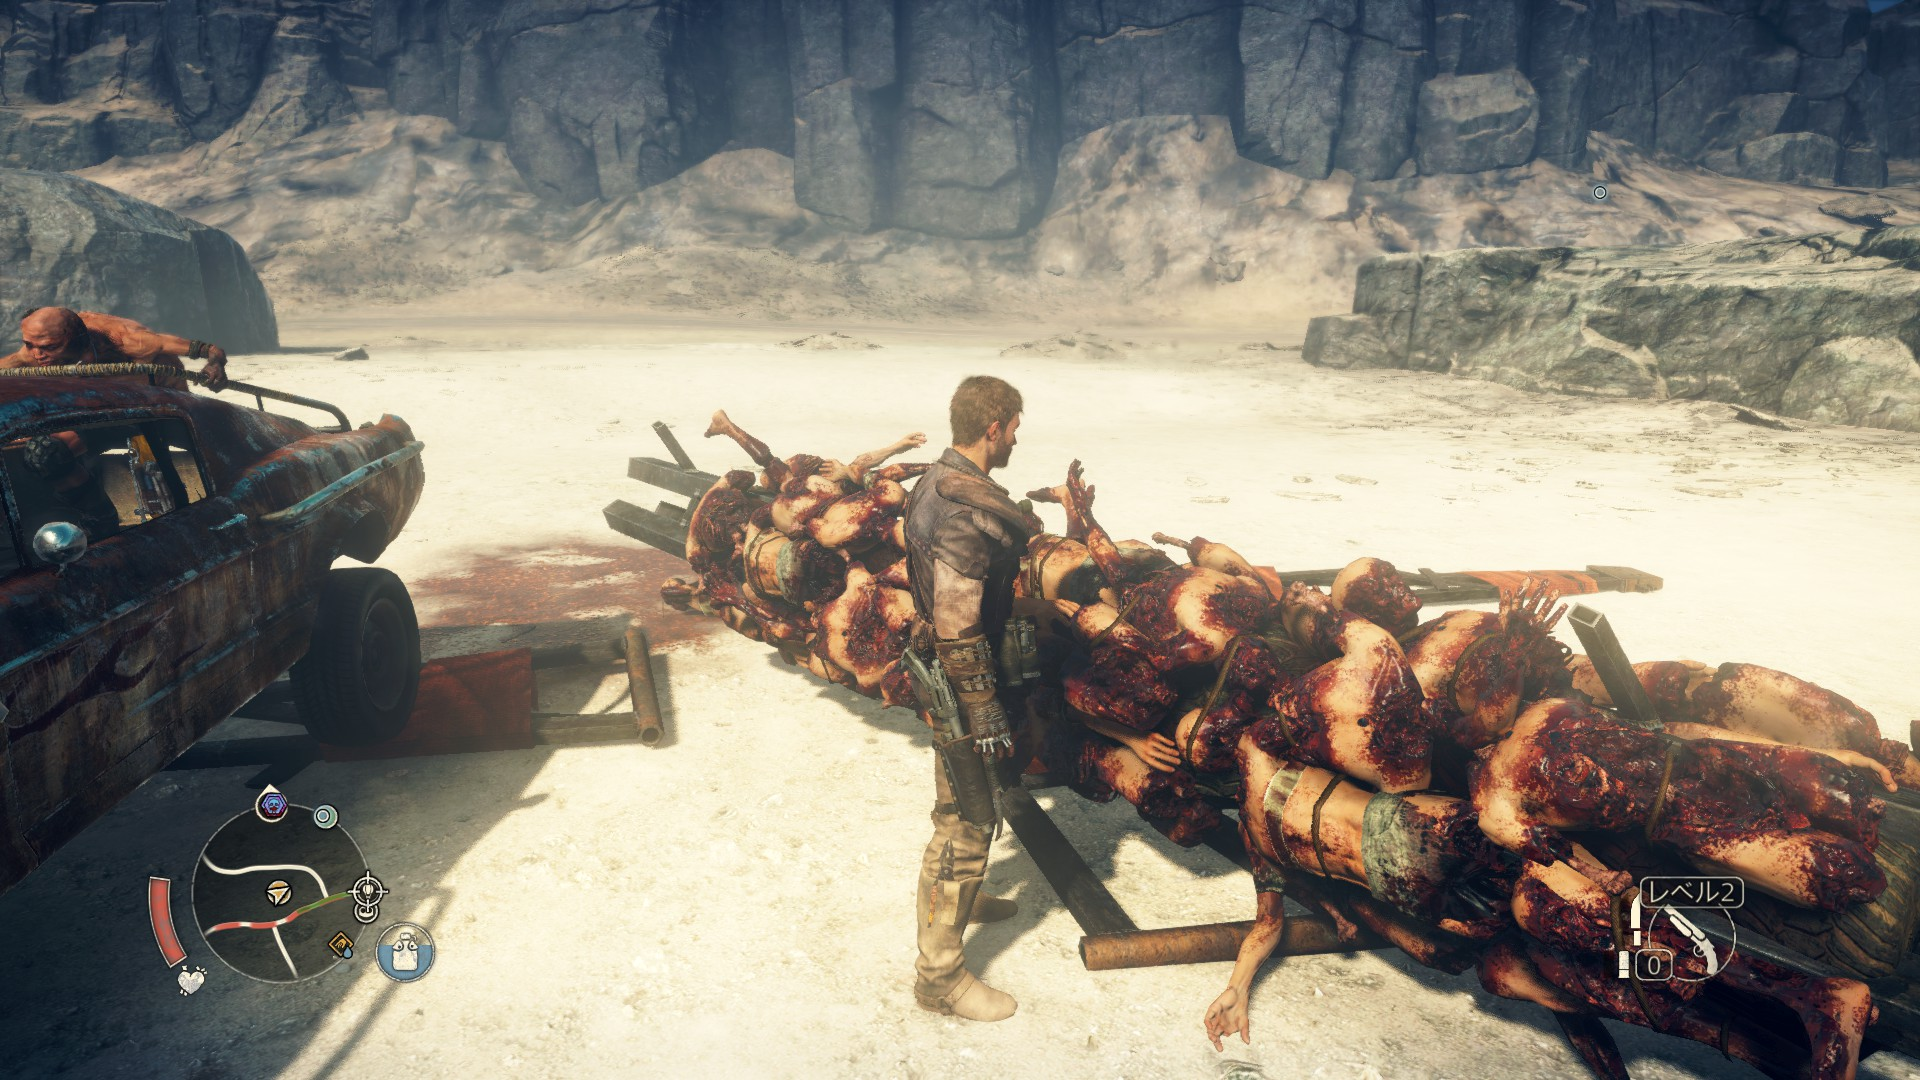 http://game.entames.net/files/madmax-gore.jpg